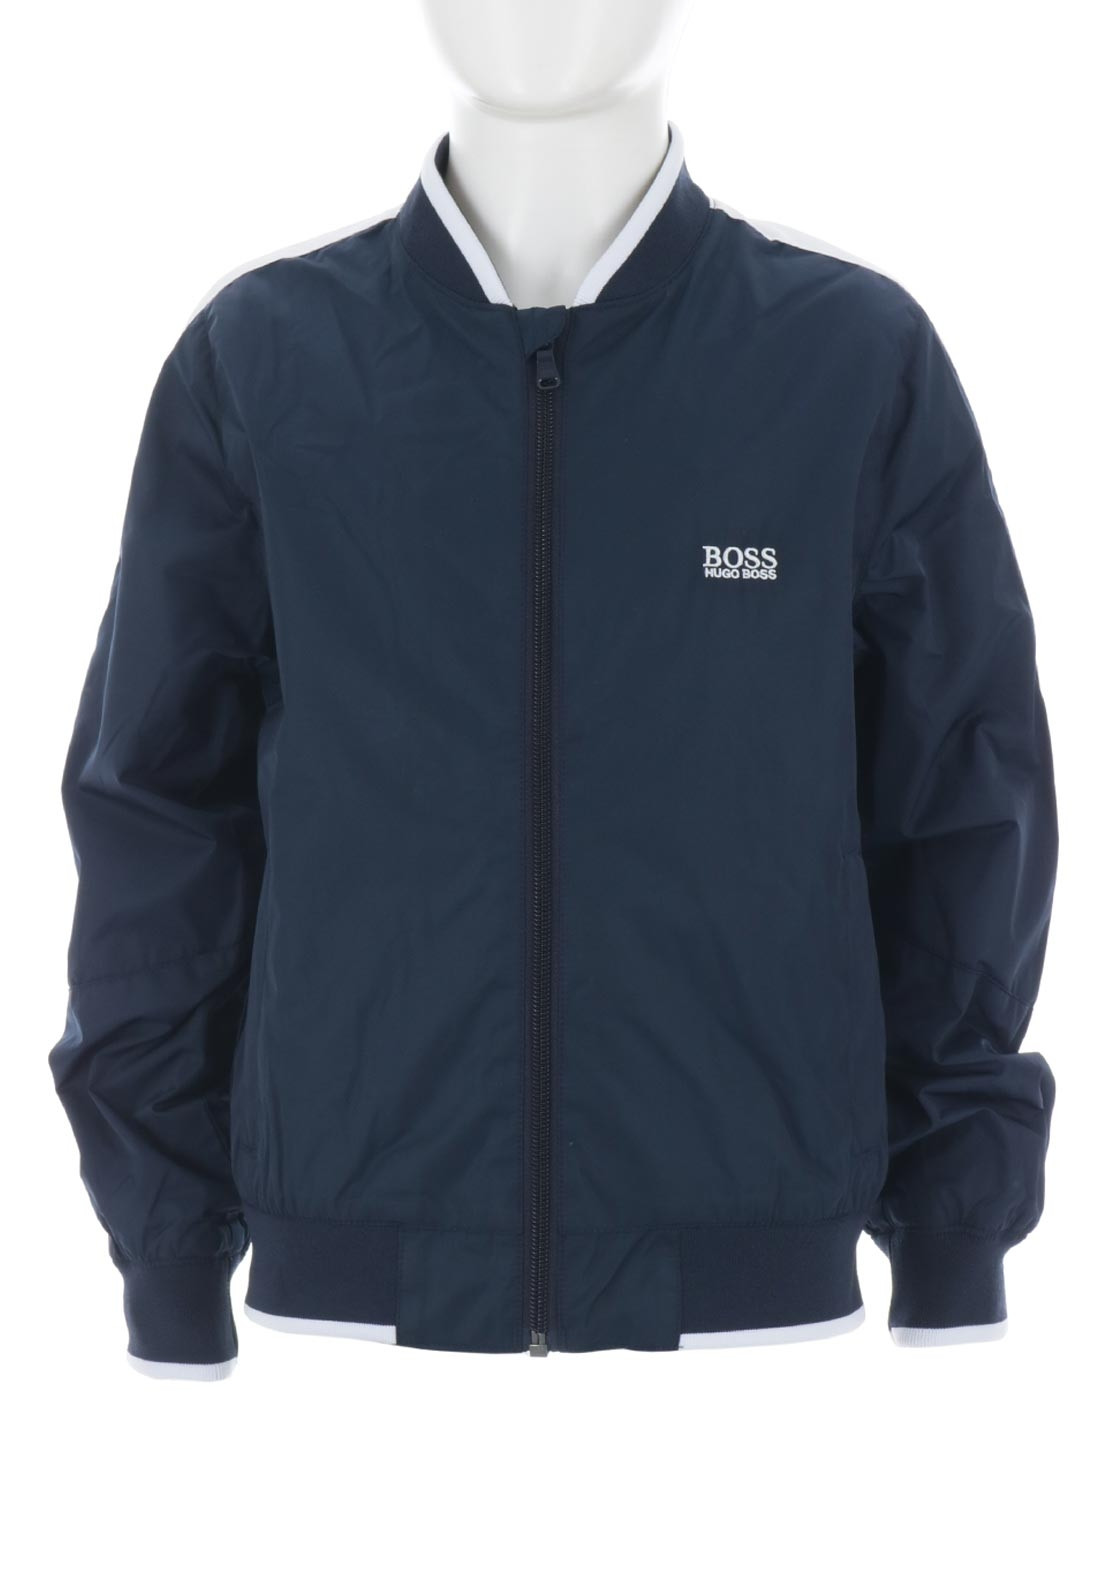 86daefd157 Hugo Boss Boys Shell Bomber Jacket, Navy. Be the first to review this  product